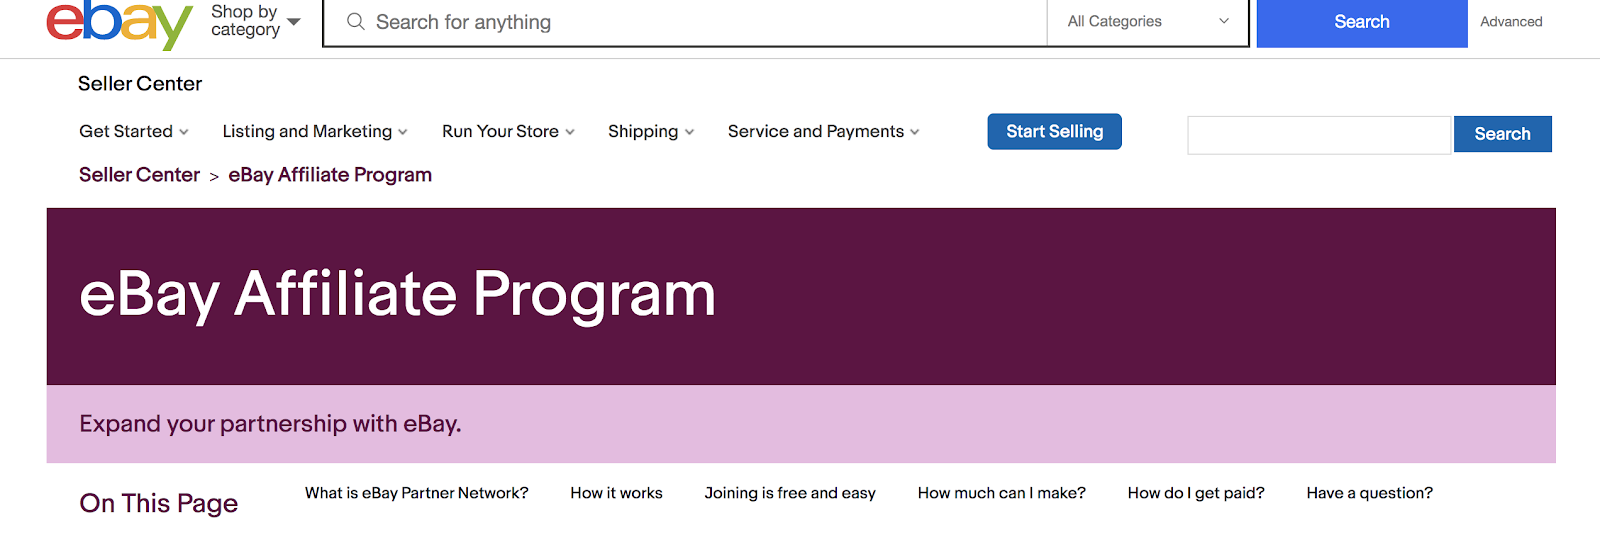 eBay Affiliate Program Landing Page (Screenshot)